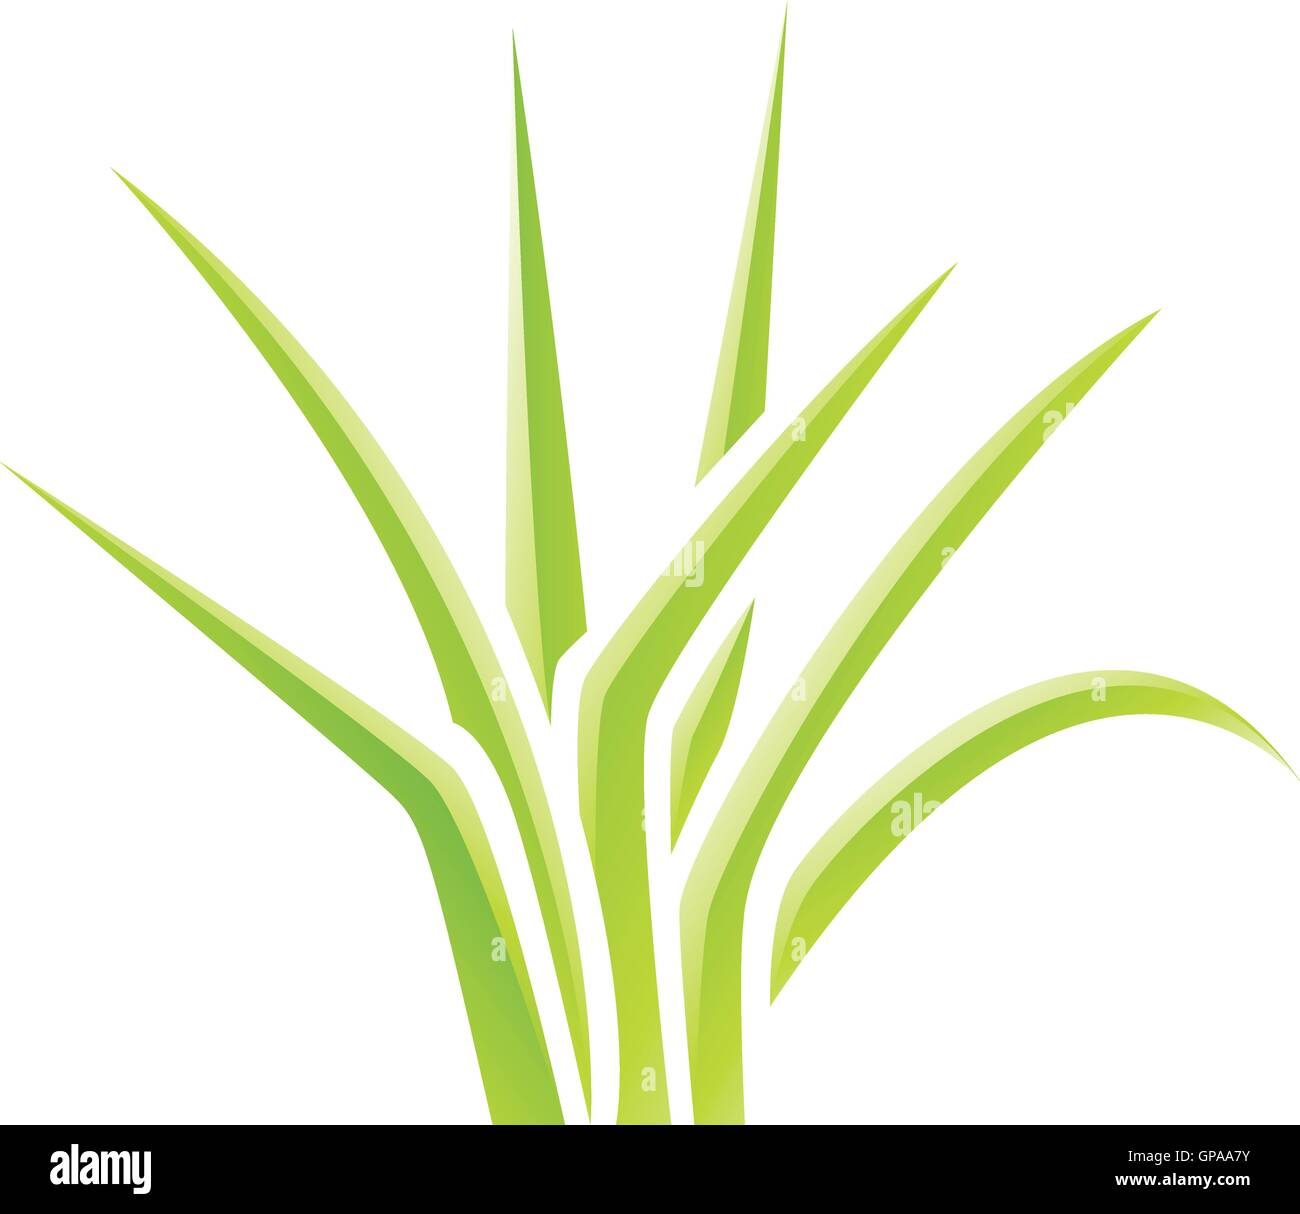 Illustration of Green Glossy Grass Icon isolated on a white background - Stock Vector